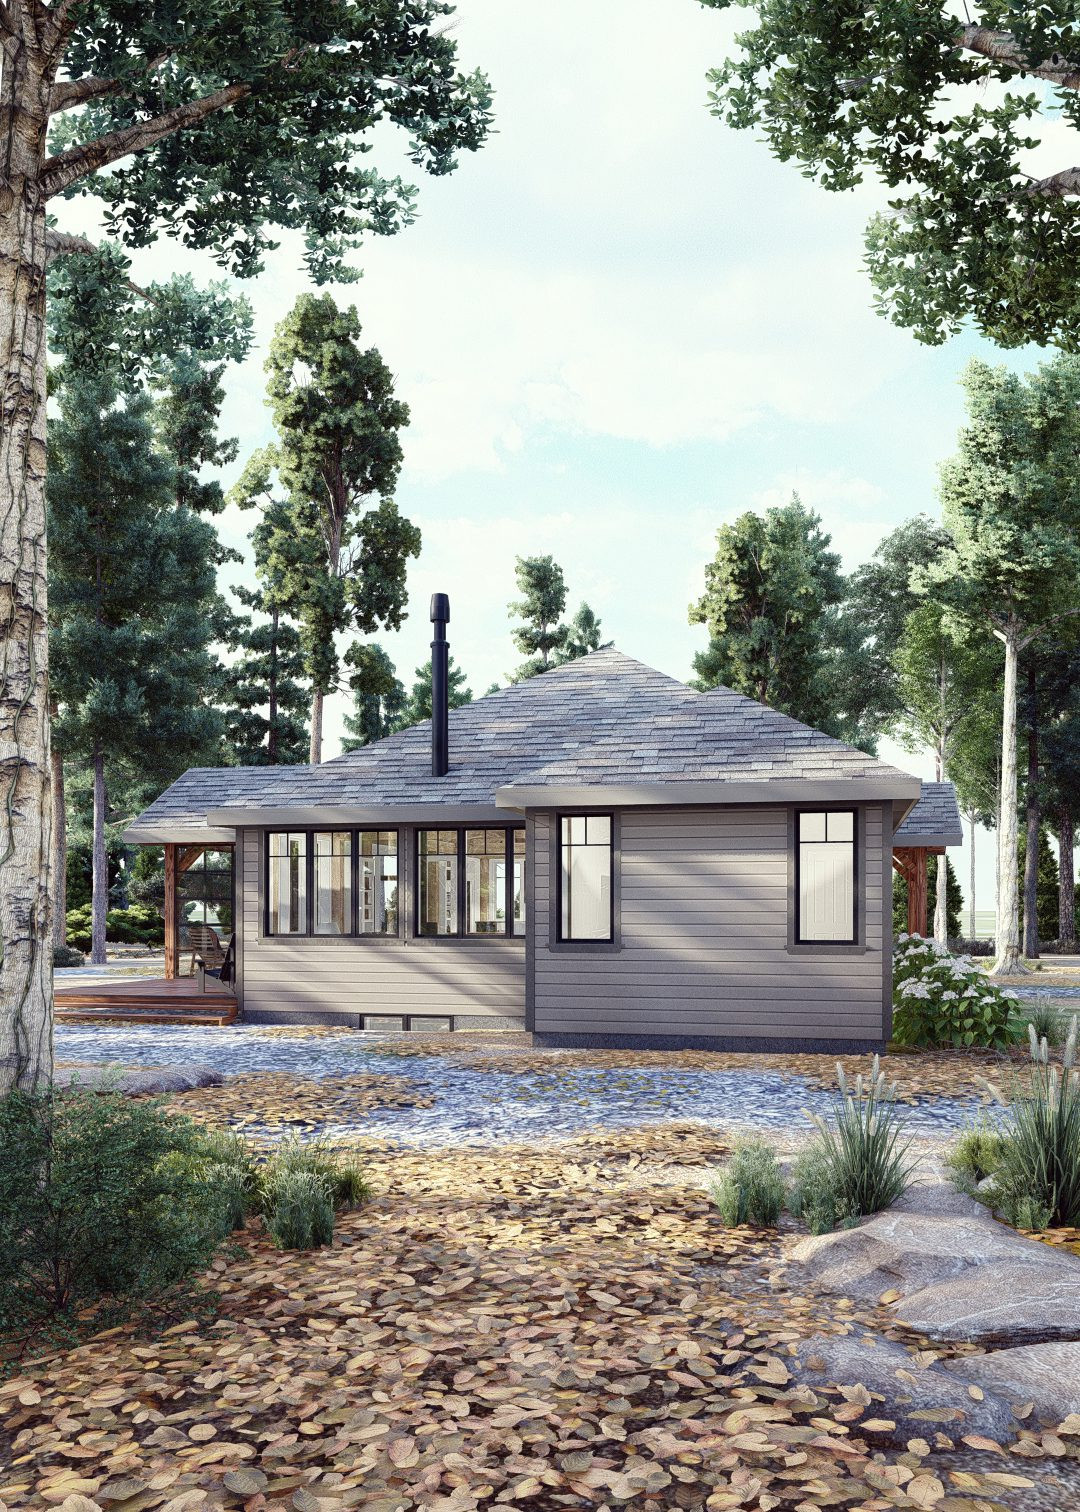 Normerica Timber Homes, Timber Frame, House Plans, The Herridge 3979, Exterior, Side